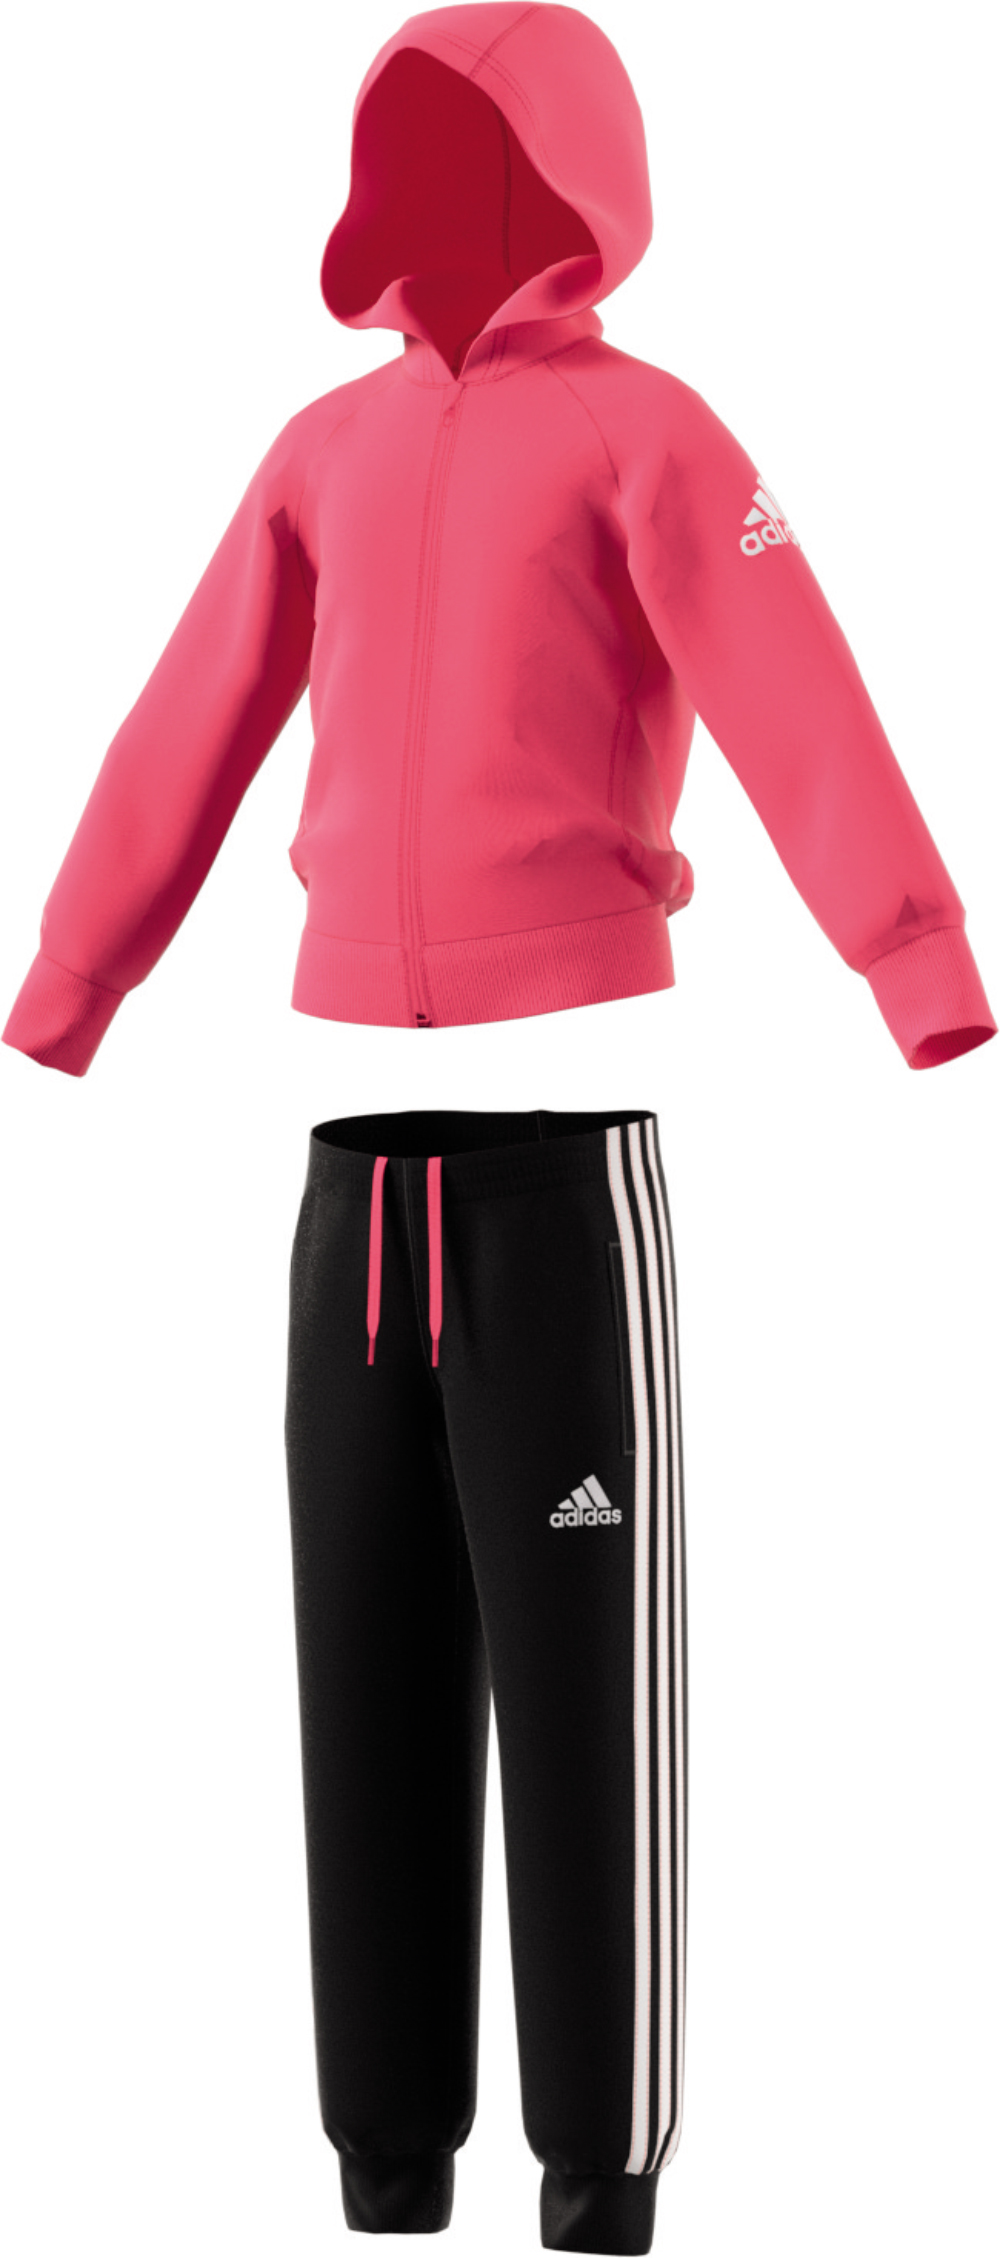 Kinder Trainingsanzug LITTLE GIRLS KNITTED TRACKSUIT